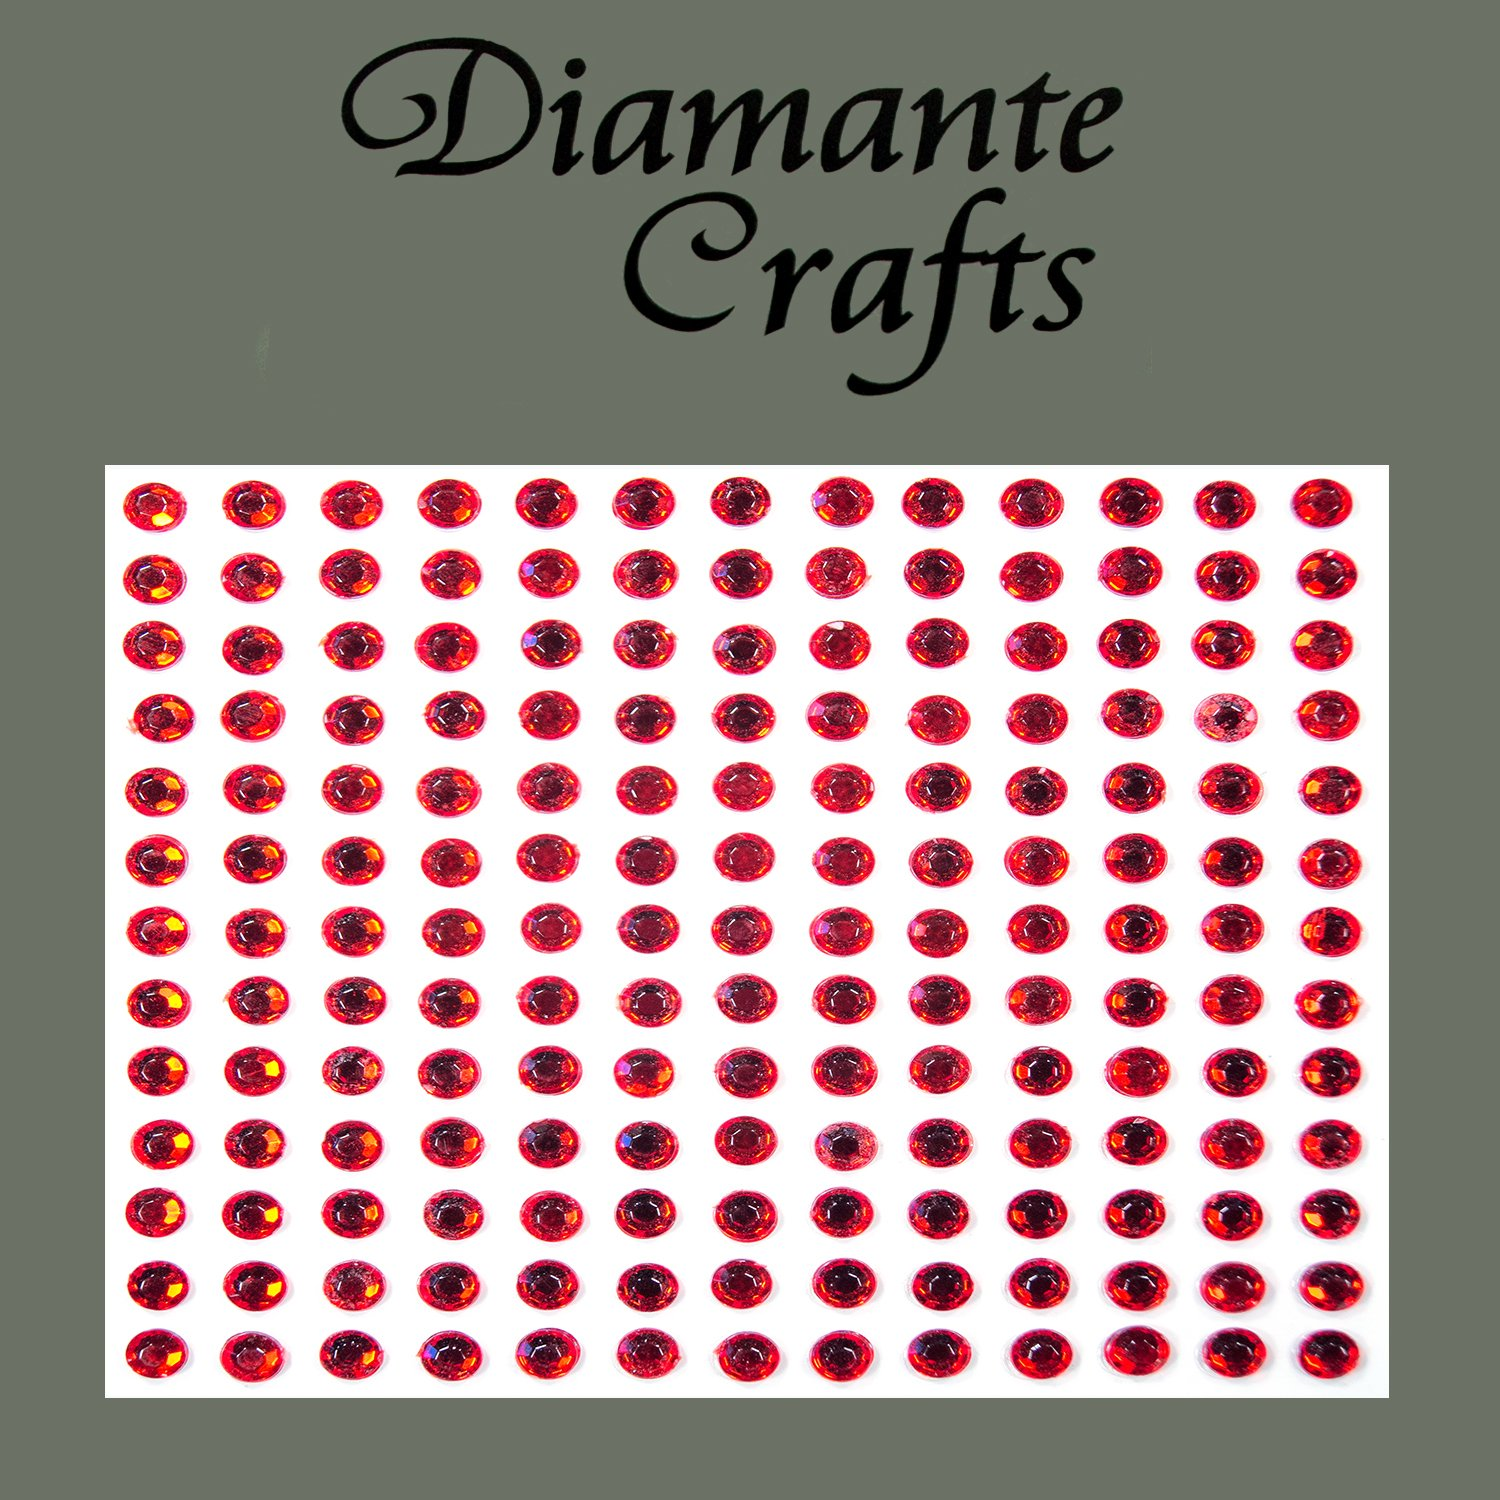 169 x 4mm Red Diamante Self Adhesive Rhinestone Body Rhinestone Gems - created exclusively for Diamante Crafts